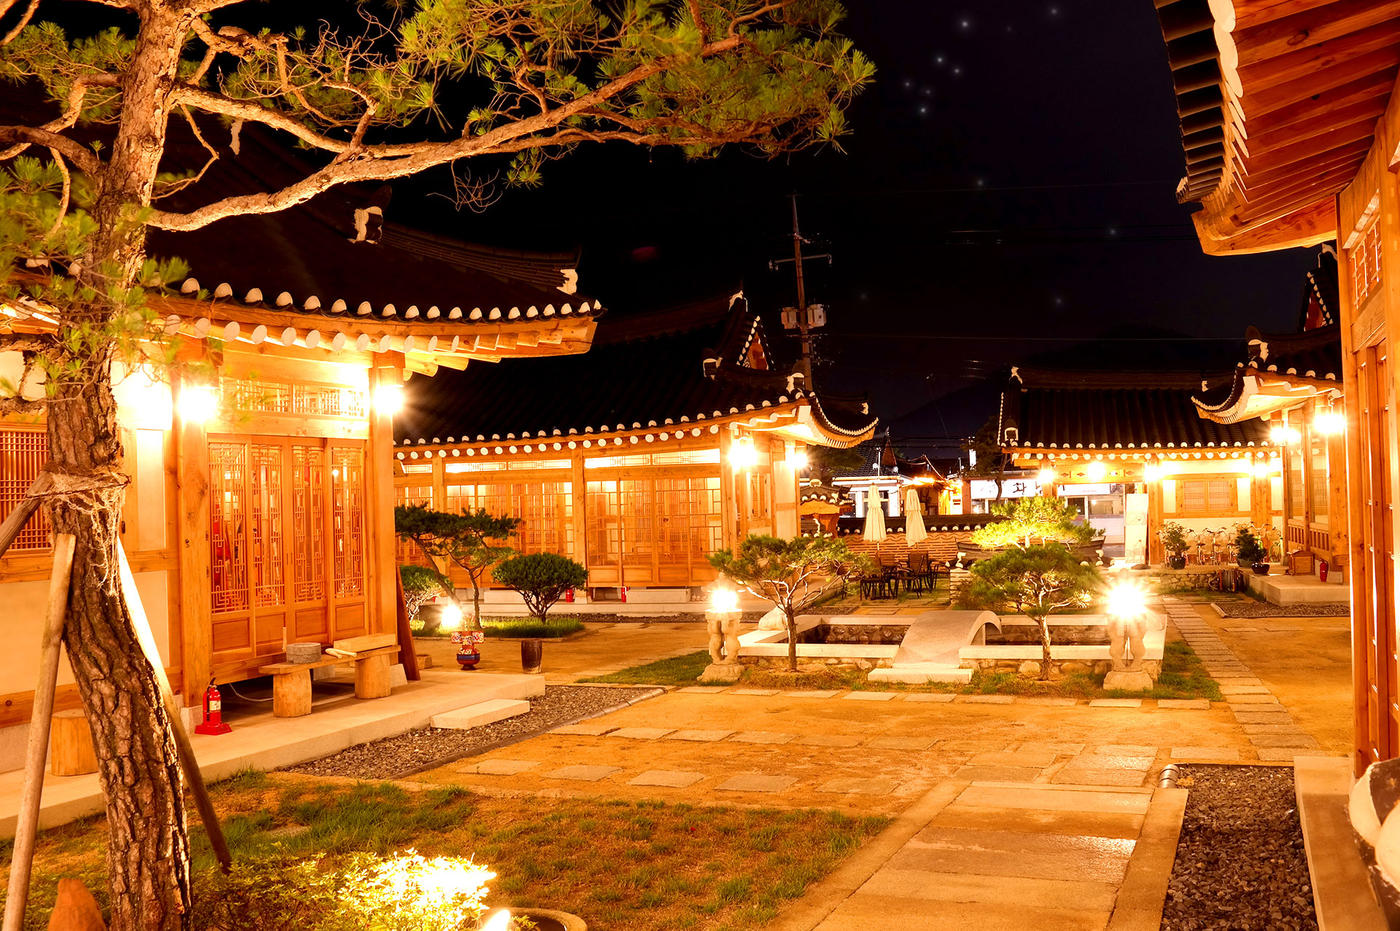 Exterior at night, Hwangnamguan Hanok, Gyeongju